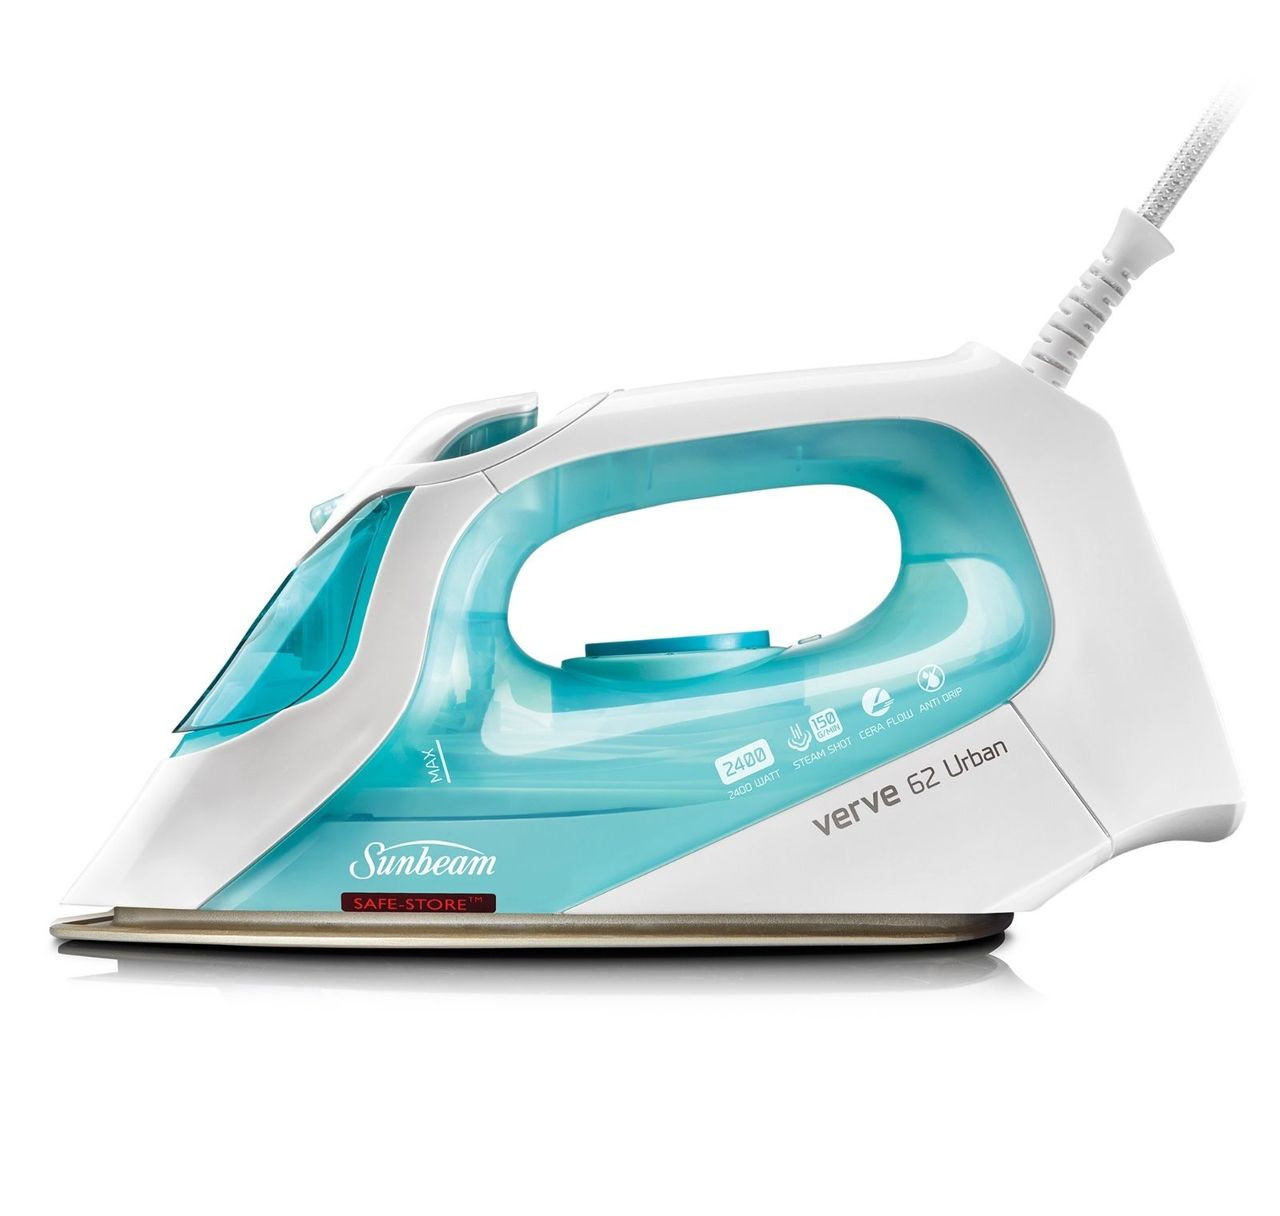 Sunbeam SR6250 Verve® 62 Urban Iron